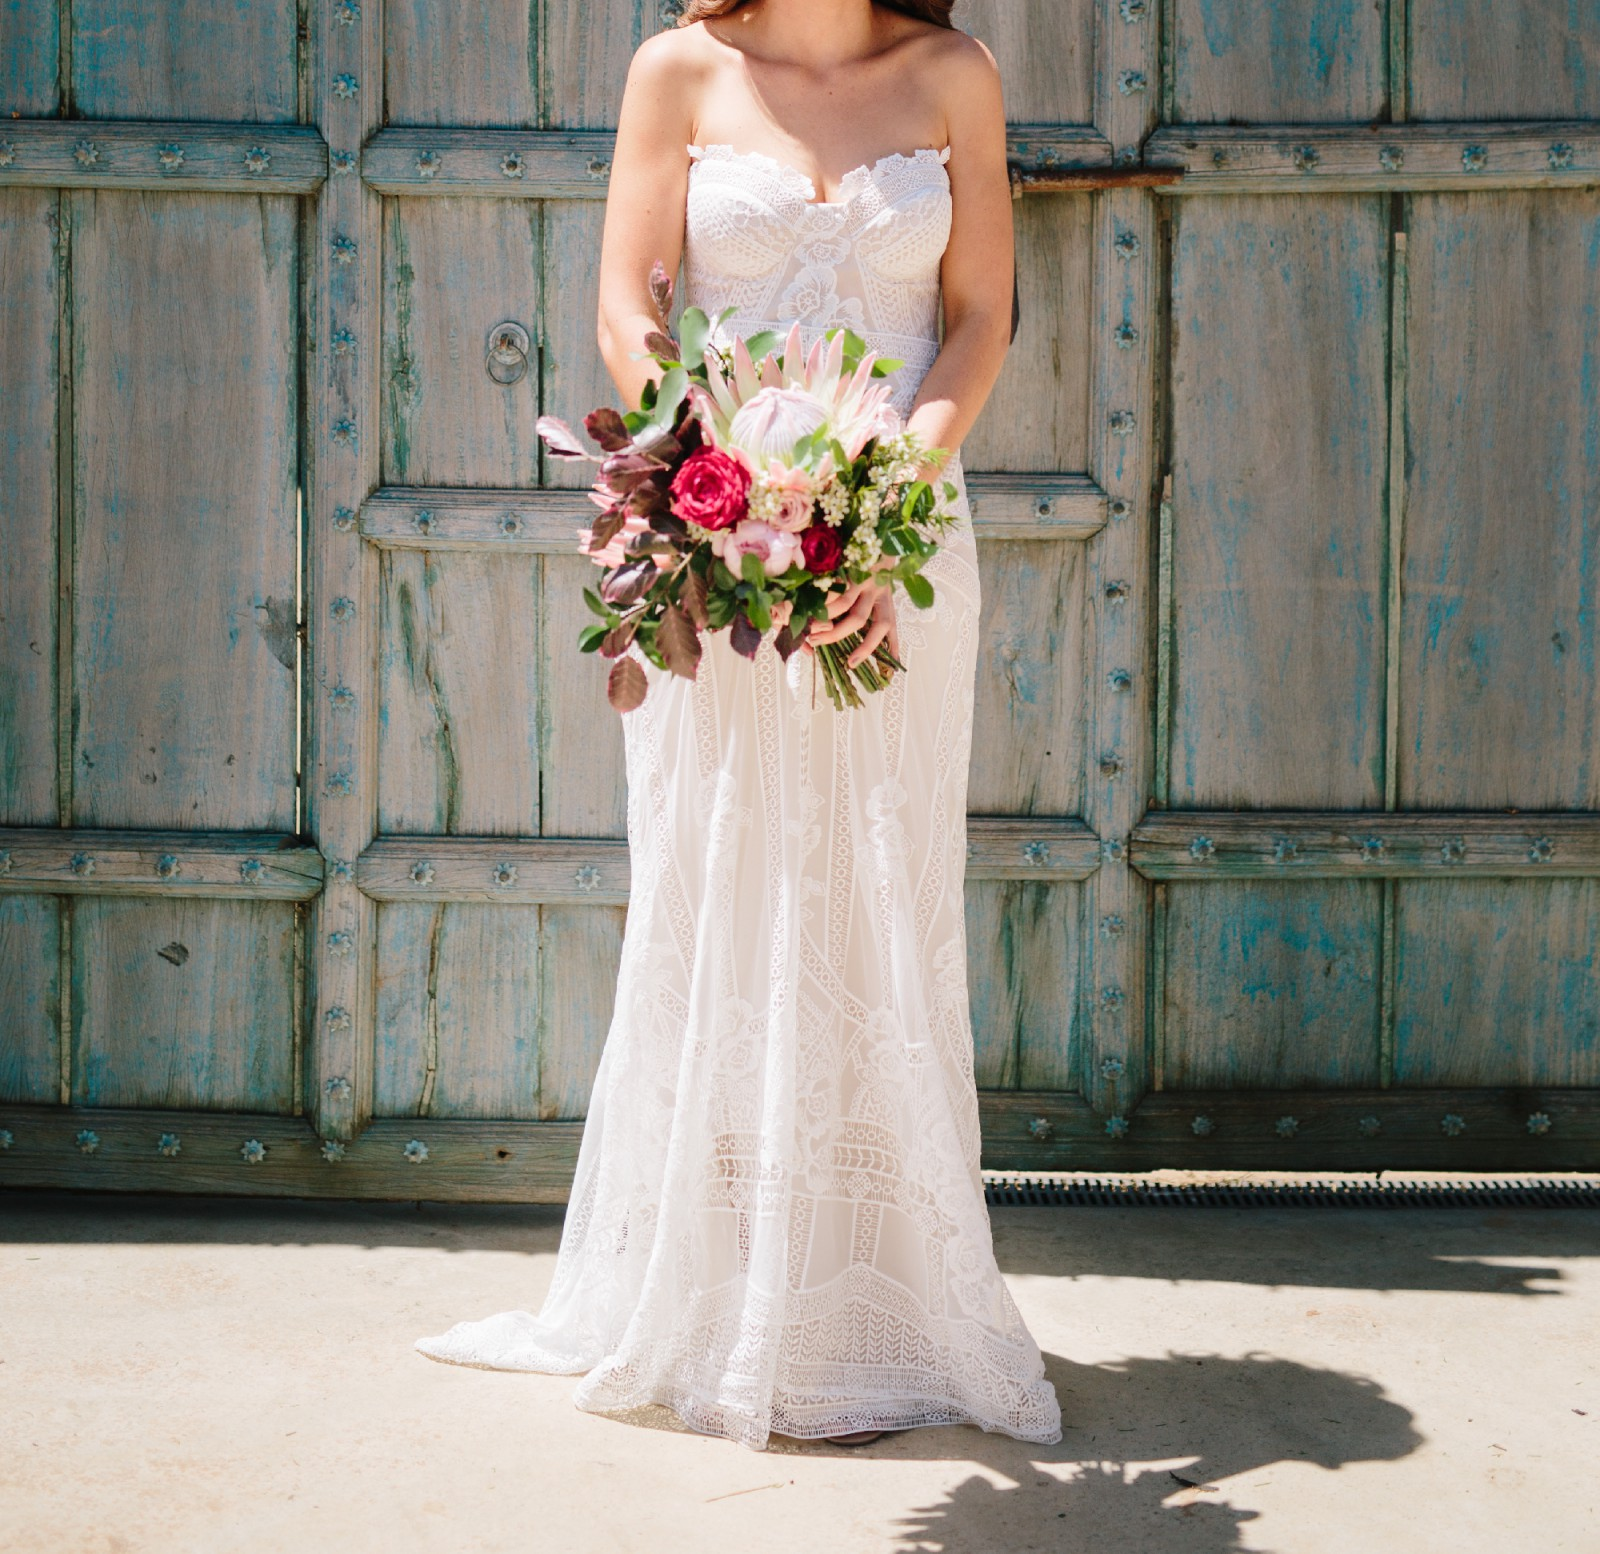 Henry Roth Second Hand Wedding Dress On Sale 82 Off: Rue De Seine Fox Gown Second Hand Wedding Dress On Sale 29